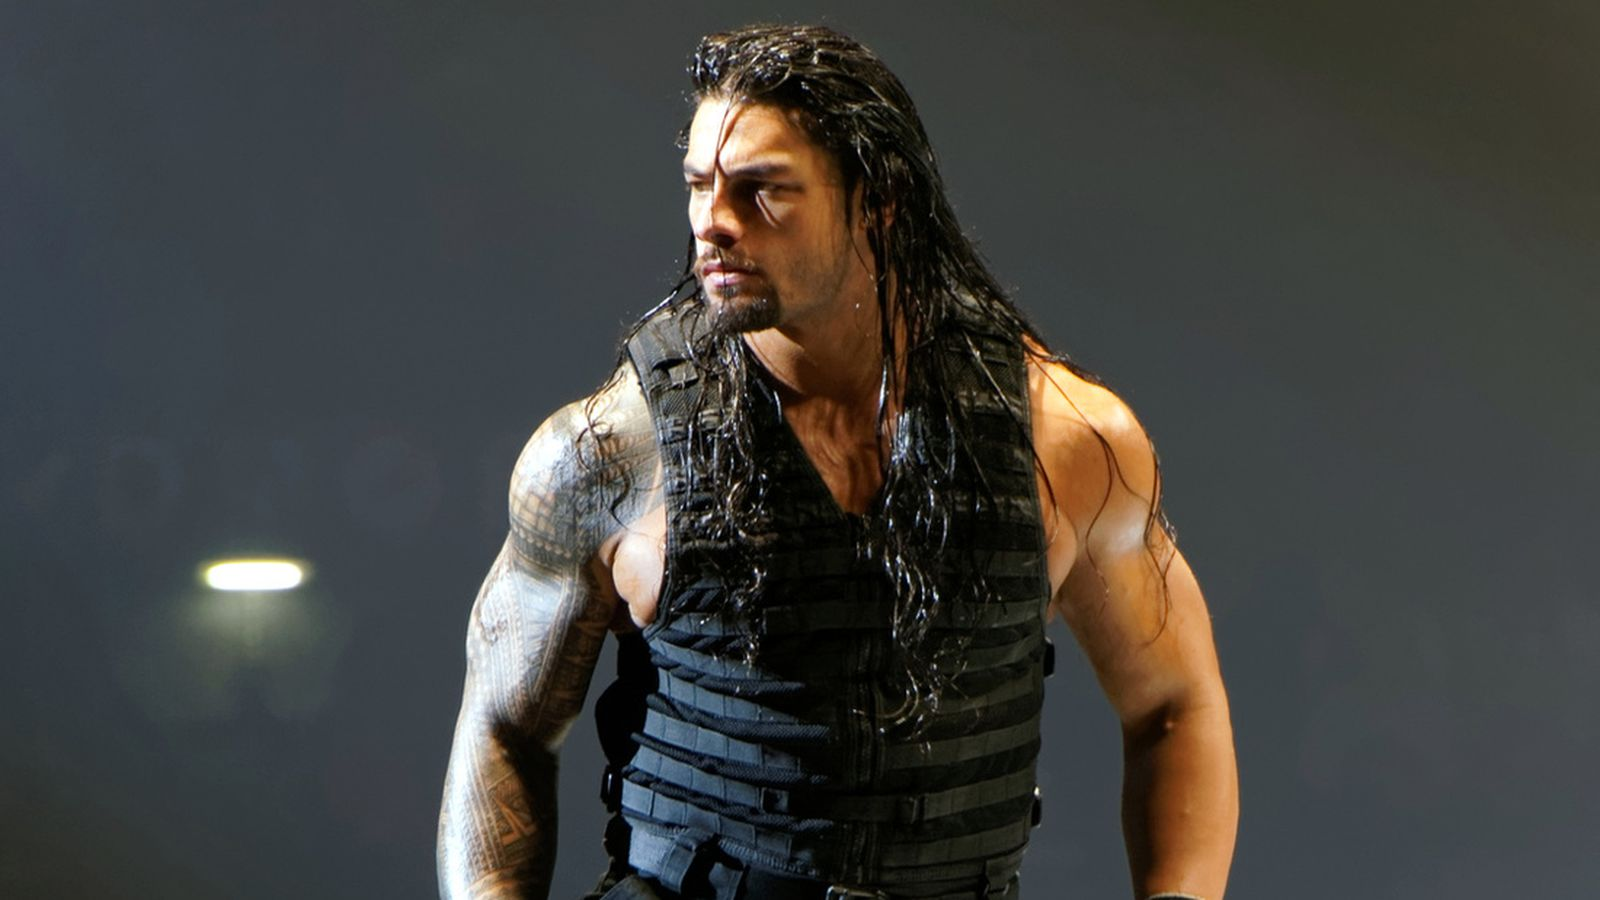 Lucha Libre 2014 Roman Reigns Tells A Great Story On The Shield's Debut At